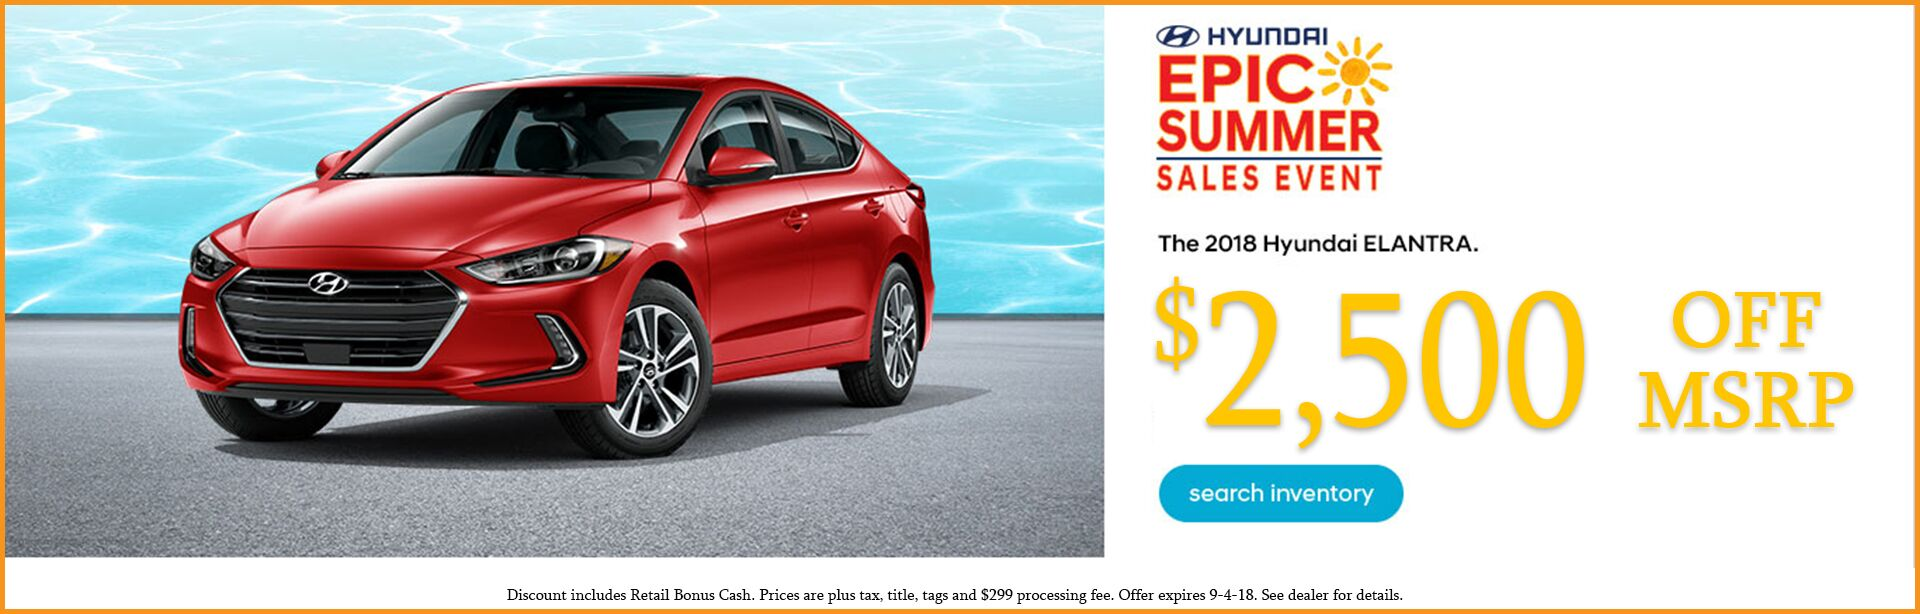 Elantra Summer Sales Event